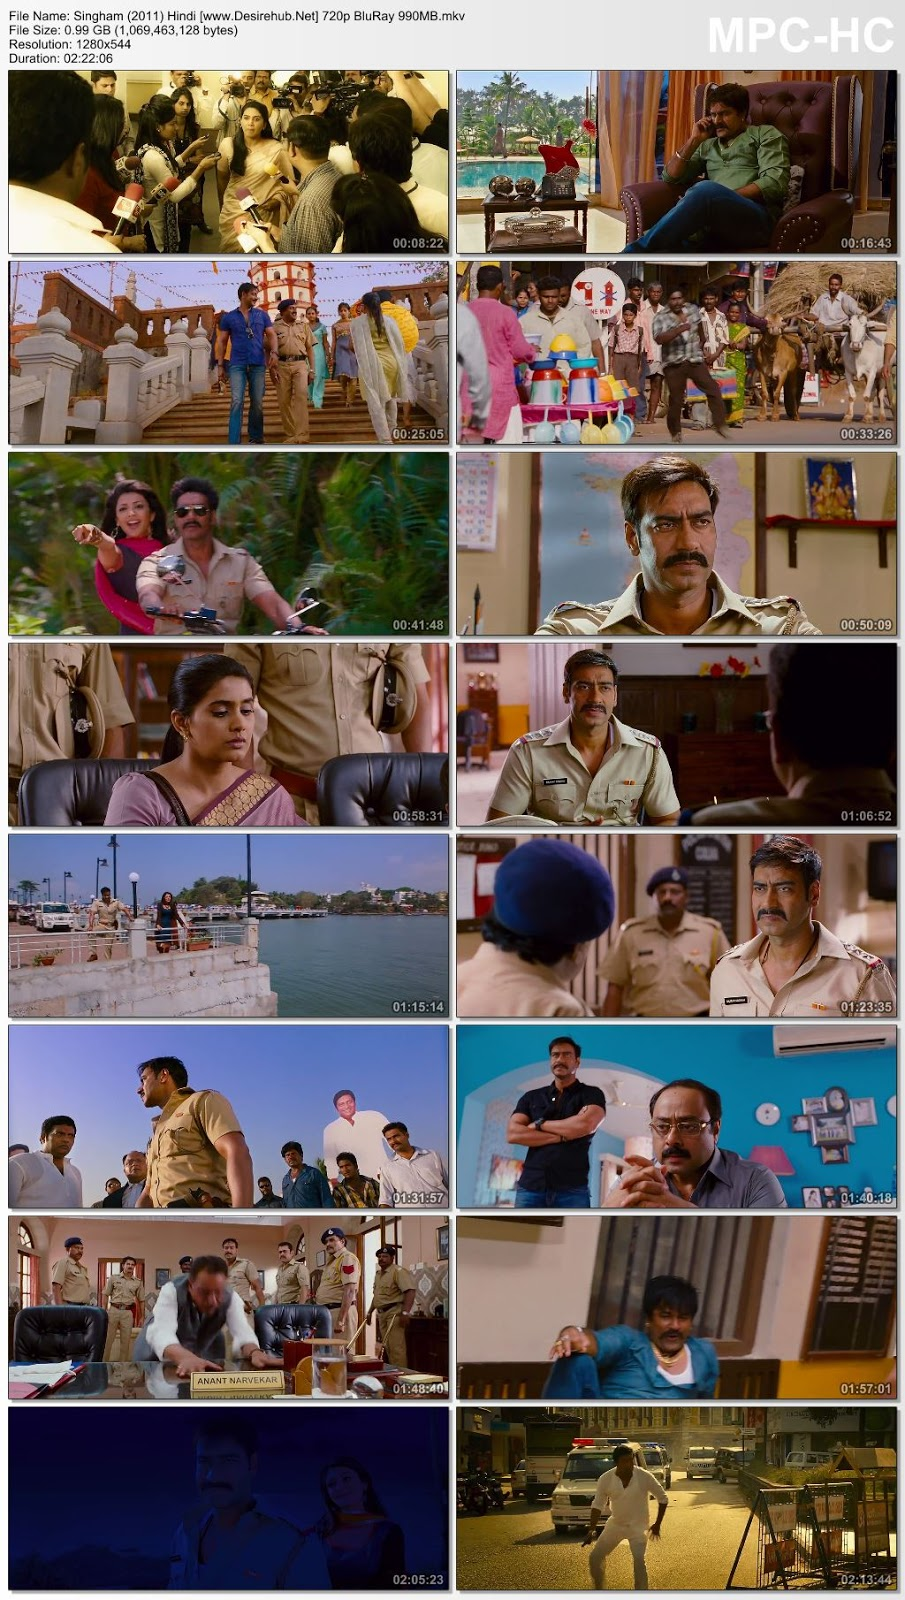 Singham (2011) Hindi 720p BluRay 990MB Desirehub